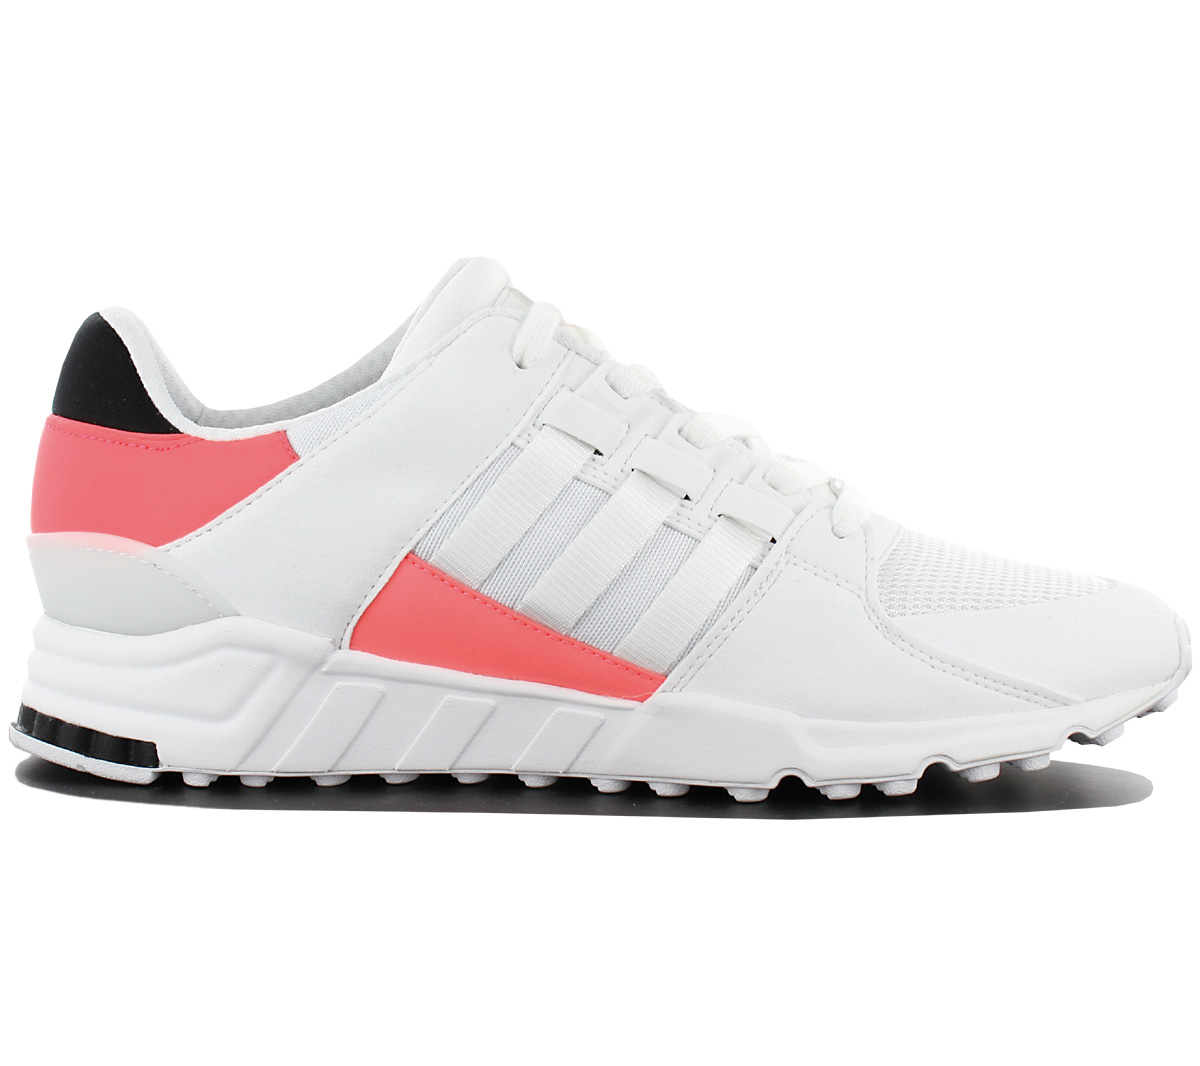 san francisco 0cf9d 88b3b Image is loading Adidas-Originals-Eqt-Equipment-Support-RF-Shoes-Trainers-